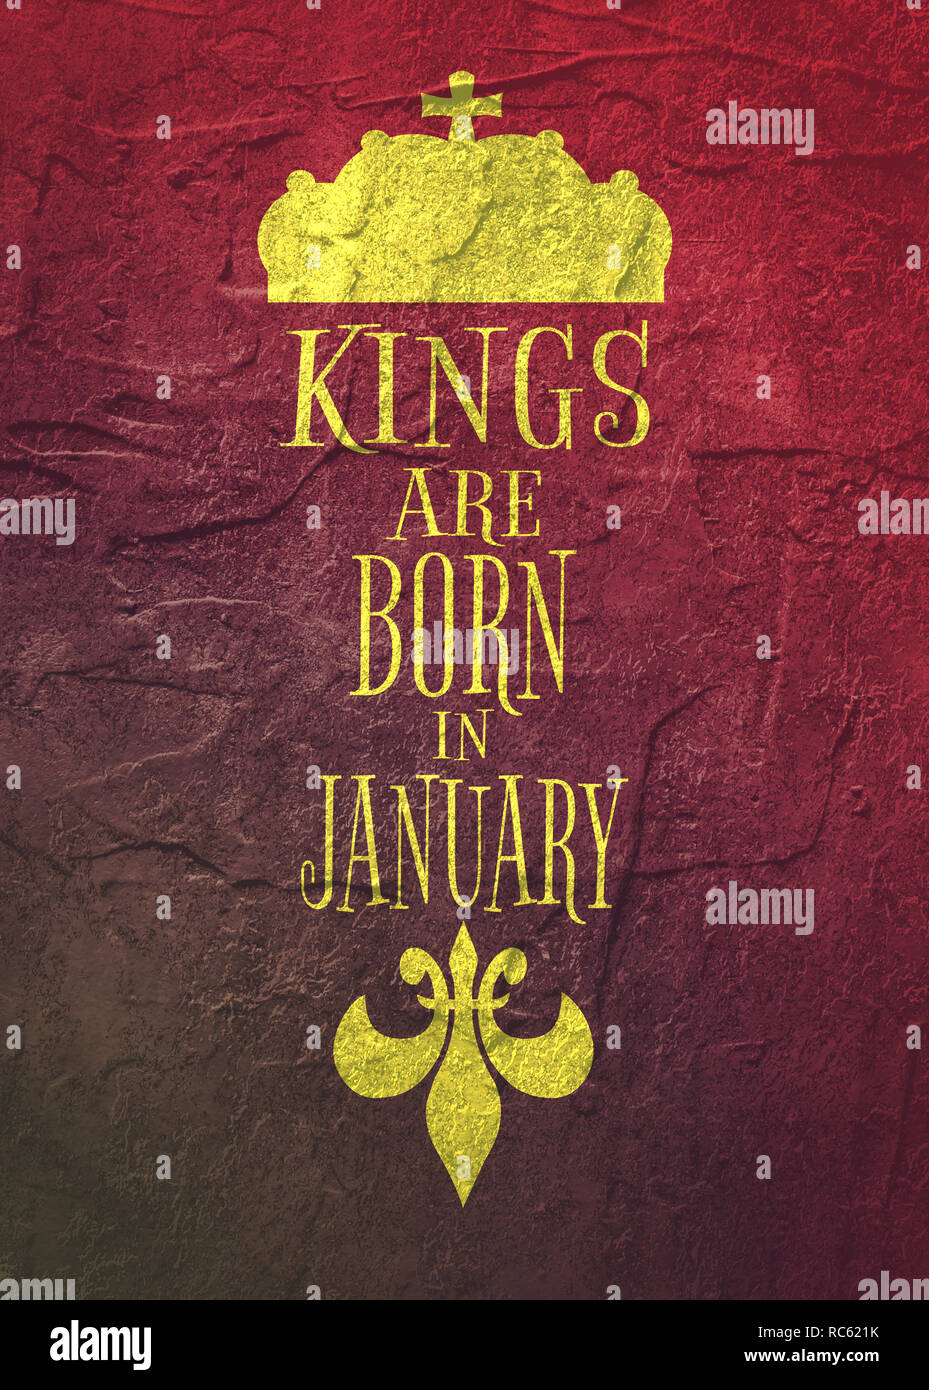 king crown images.html